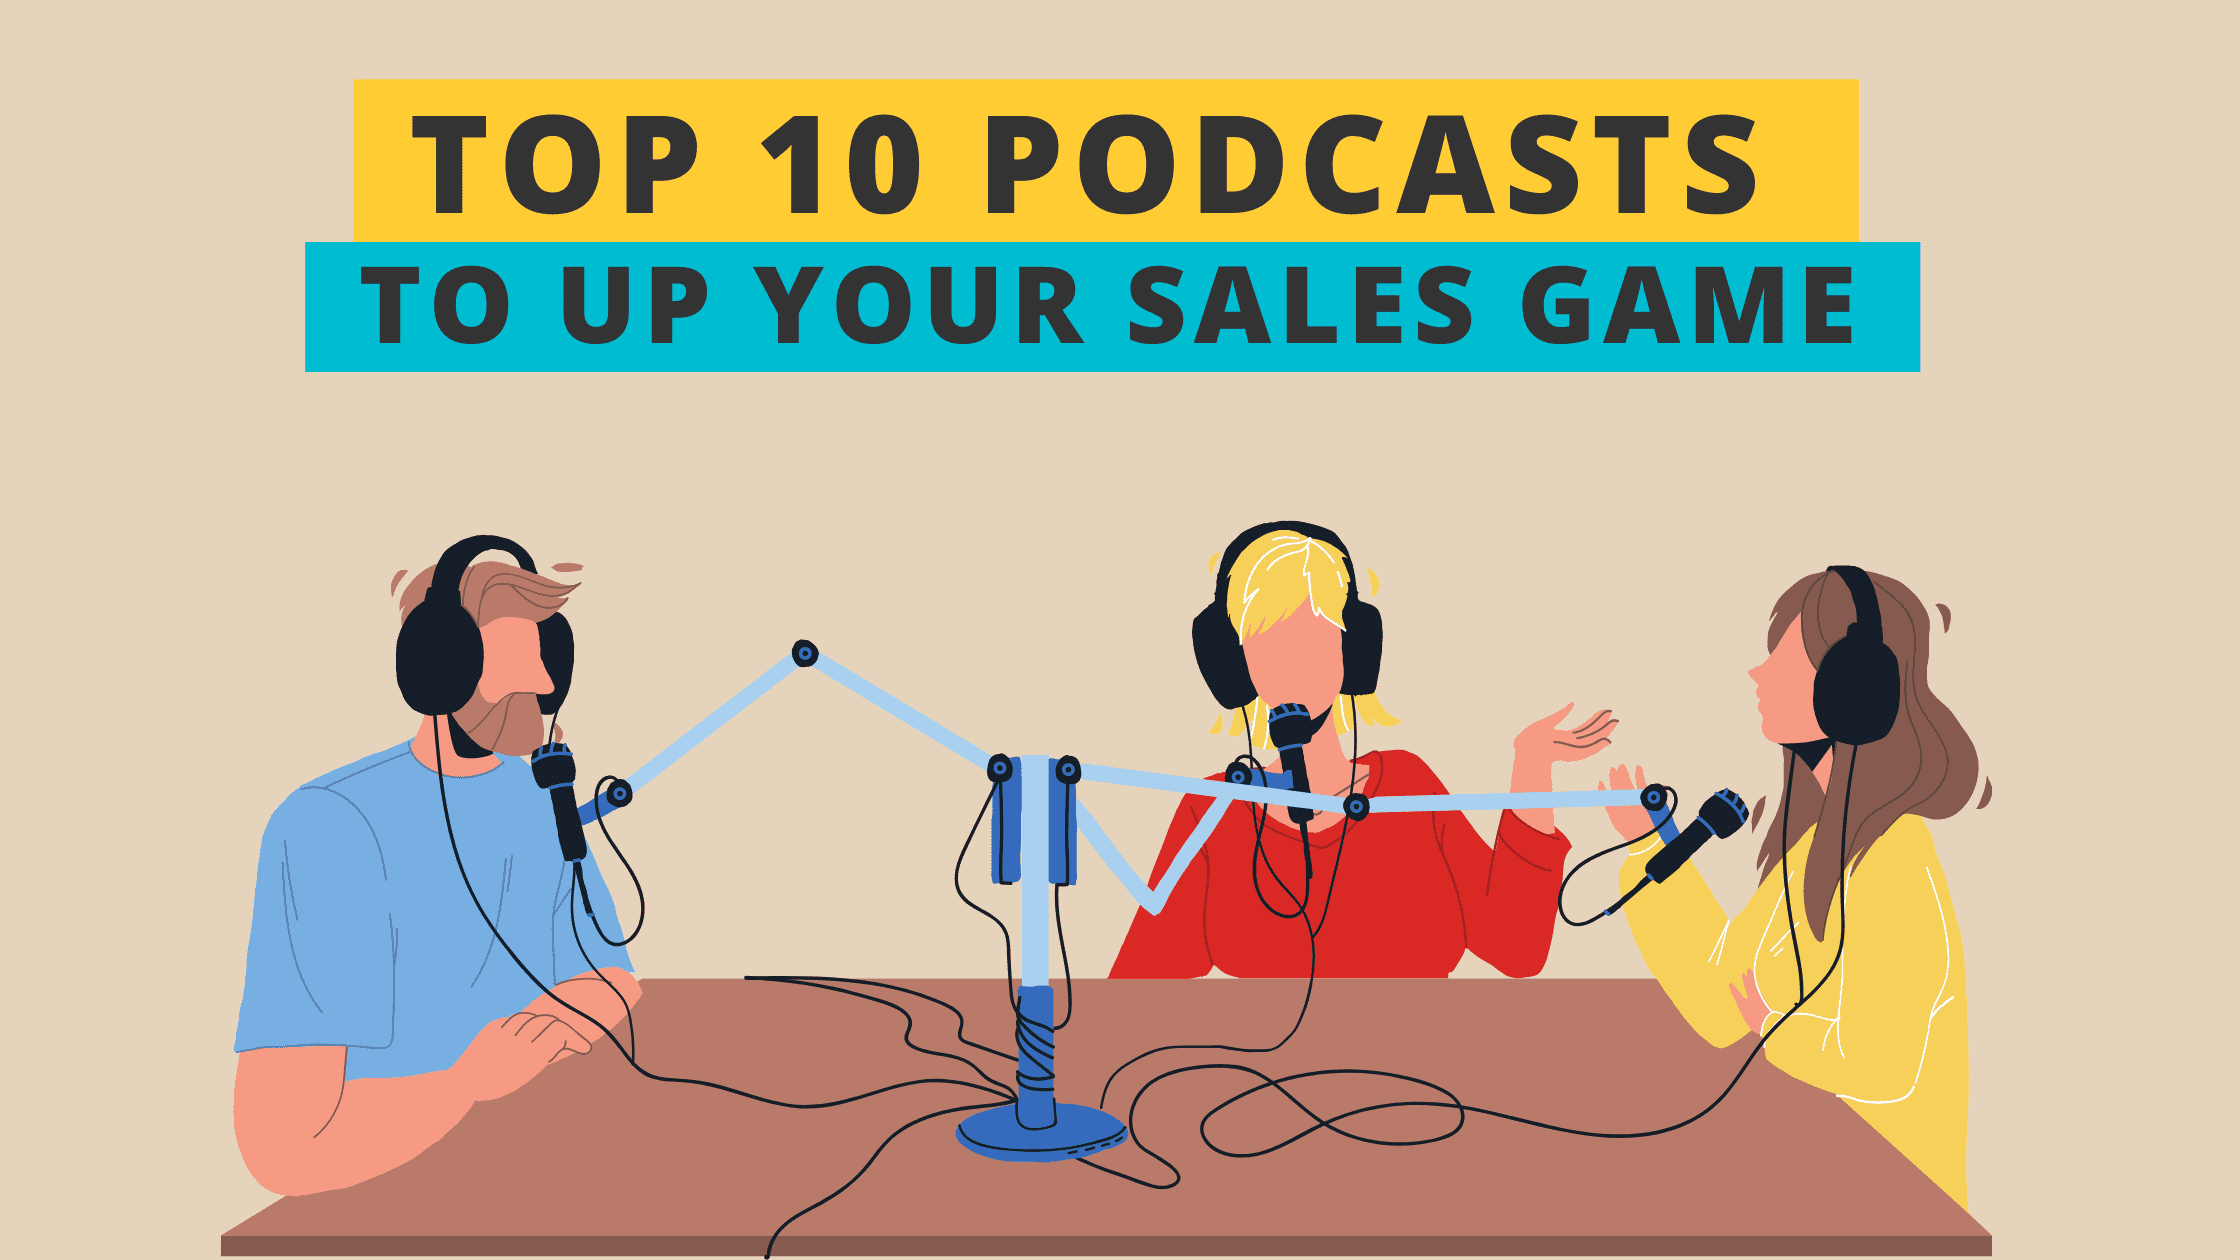 Top 10 Podcasts for Sales Professionals 2021